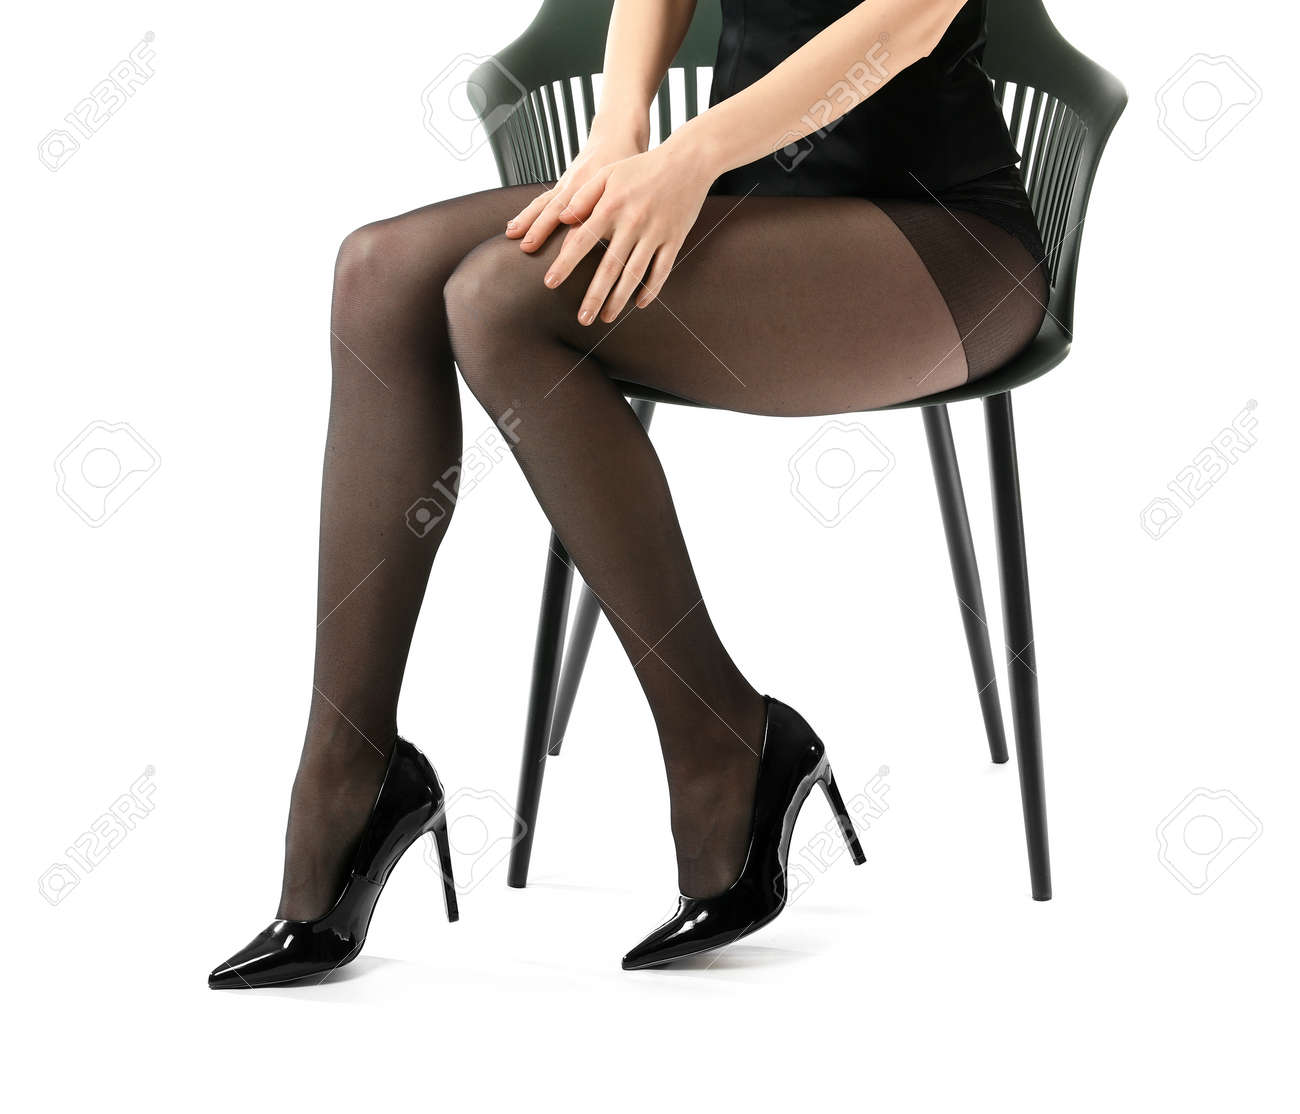 Beautiful young woman in tights sitting on chair against white background - 166666696